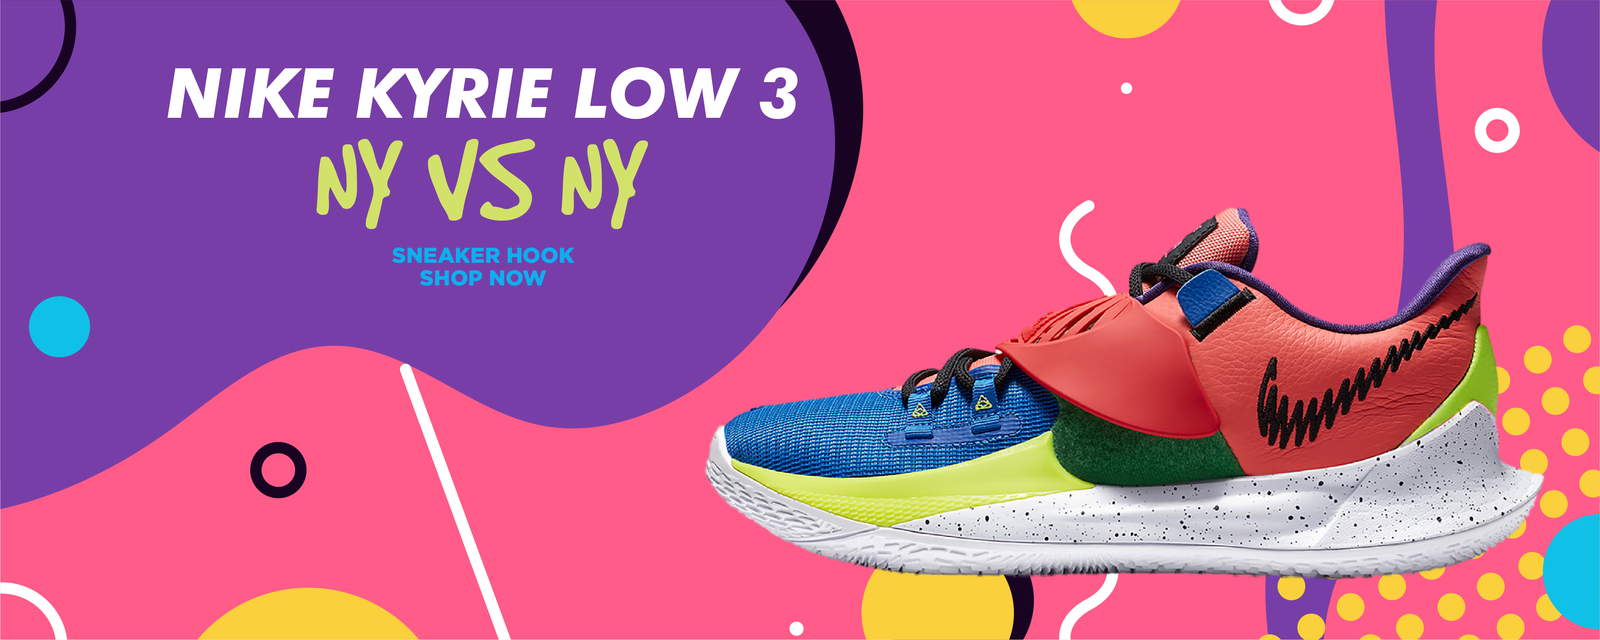 Kyrie Low 3 NY vs NY Clothing to match Sneakers | Clothing to match Nike Kyrie Low 3 NY vs NY Shoes